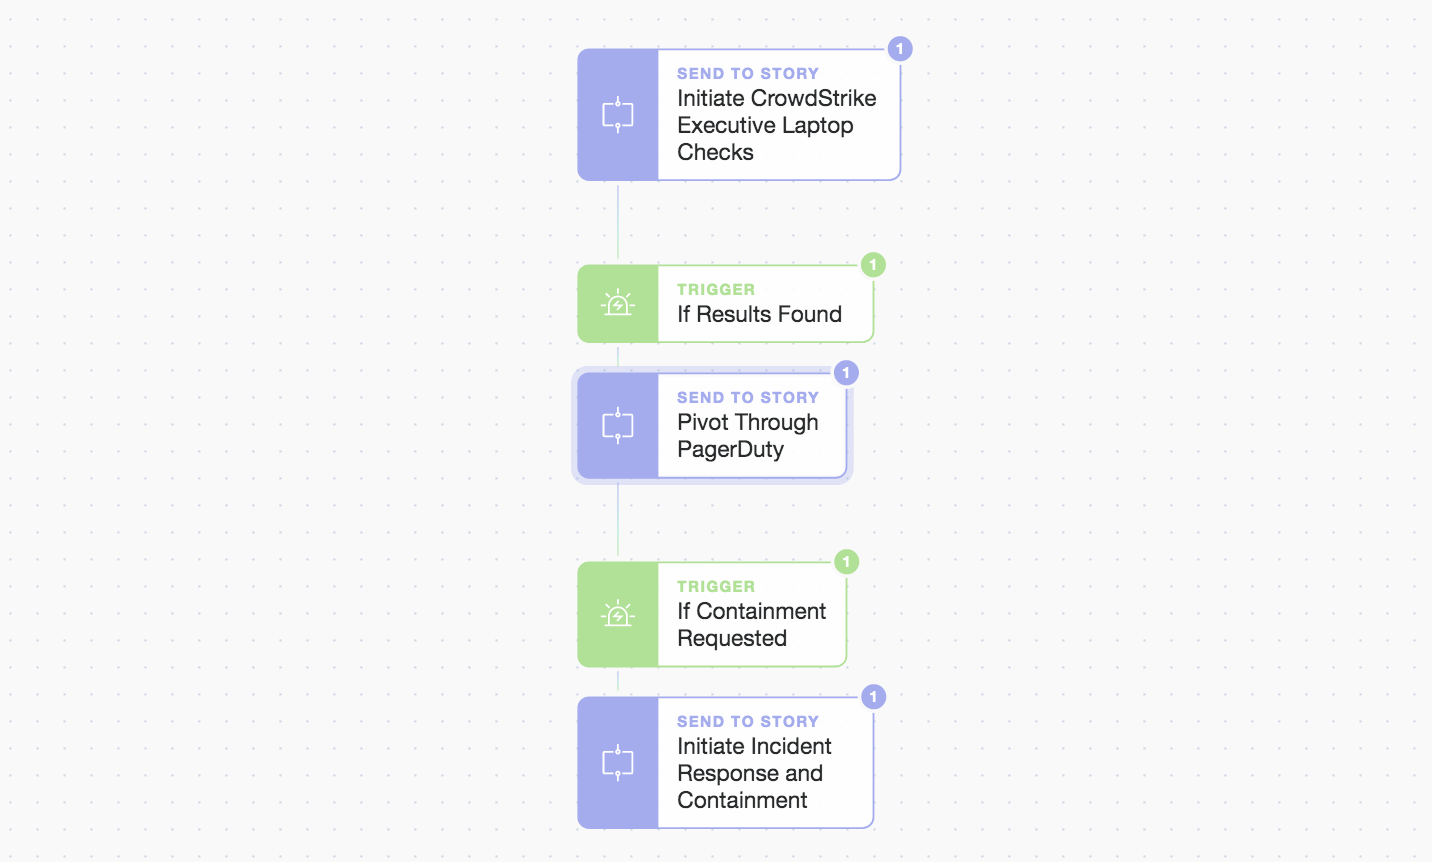 Another look at the primary story workflow